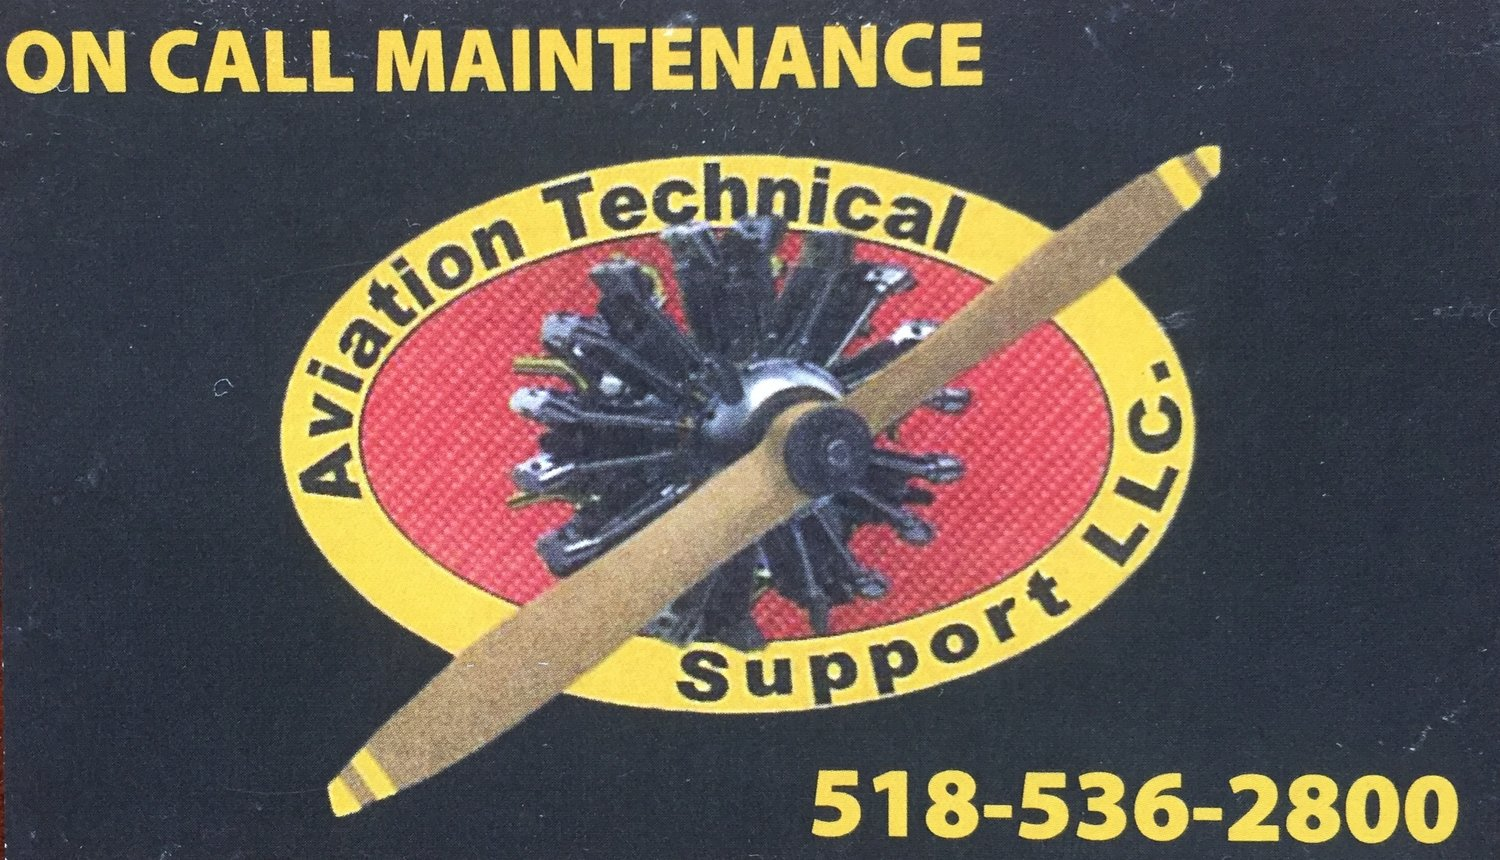 Aviation Technical Support LLC